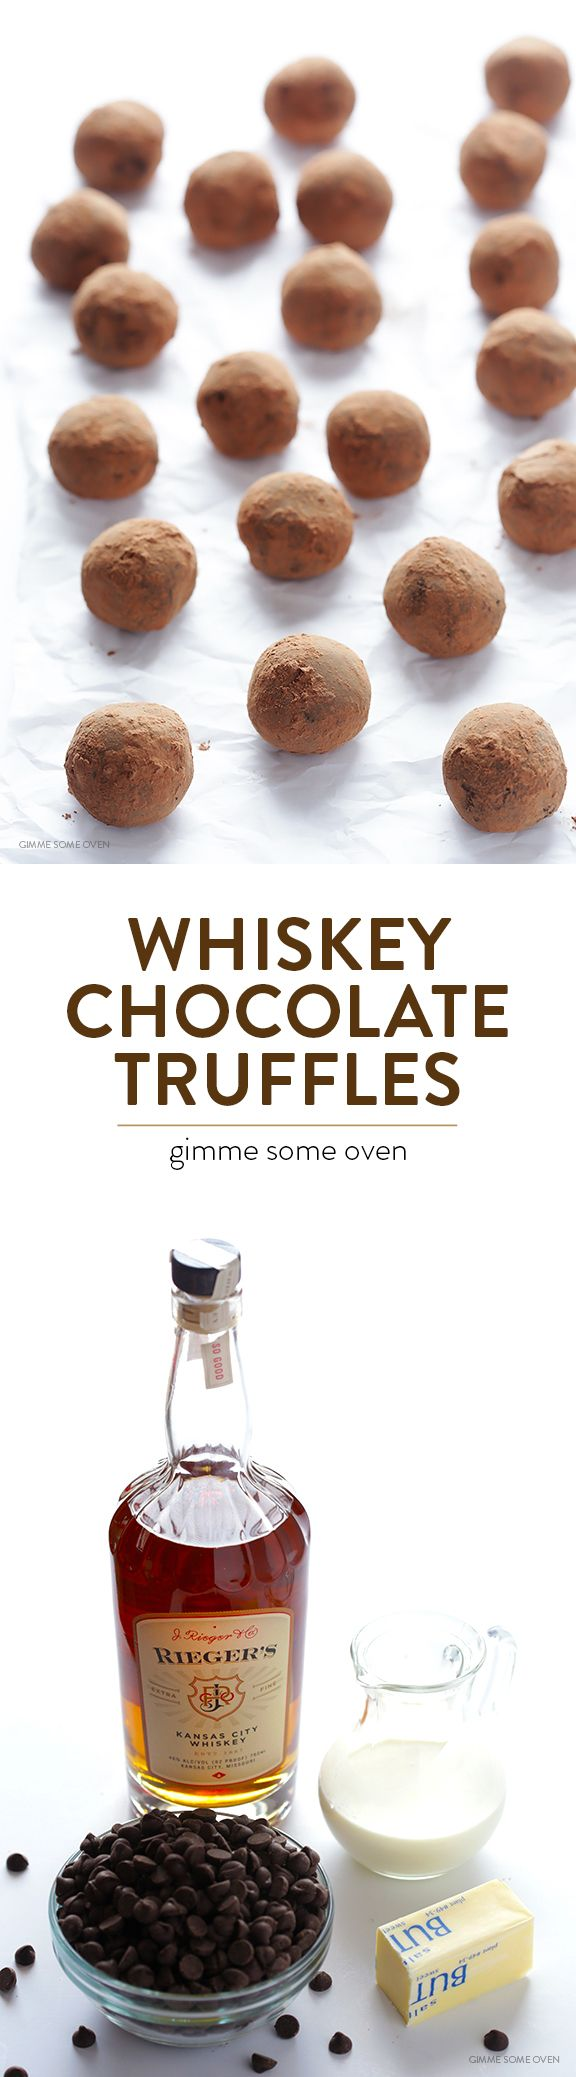 5-Ingredient Whiskey Dark Chocolate Truffles -- super easy dessert to make that's rich and delicious, with a surprise kick of whiskey! gimmesomeoven.com